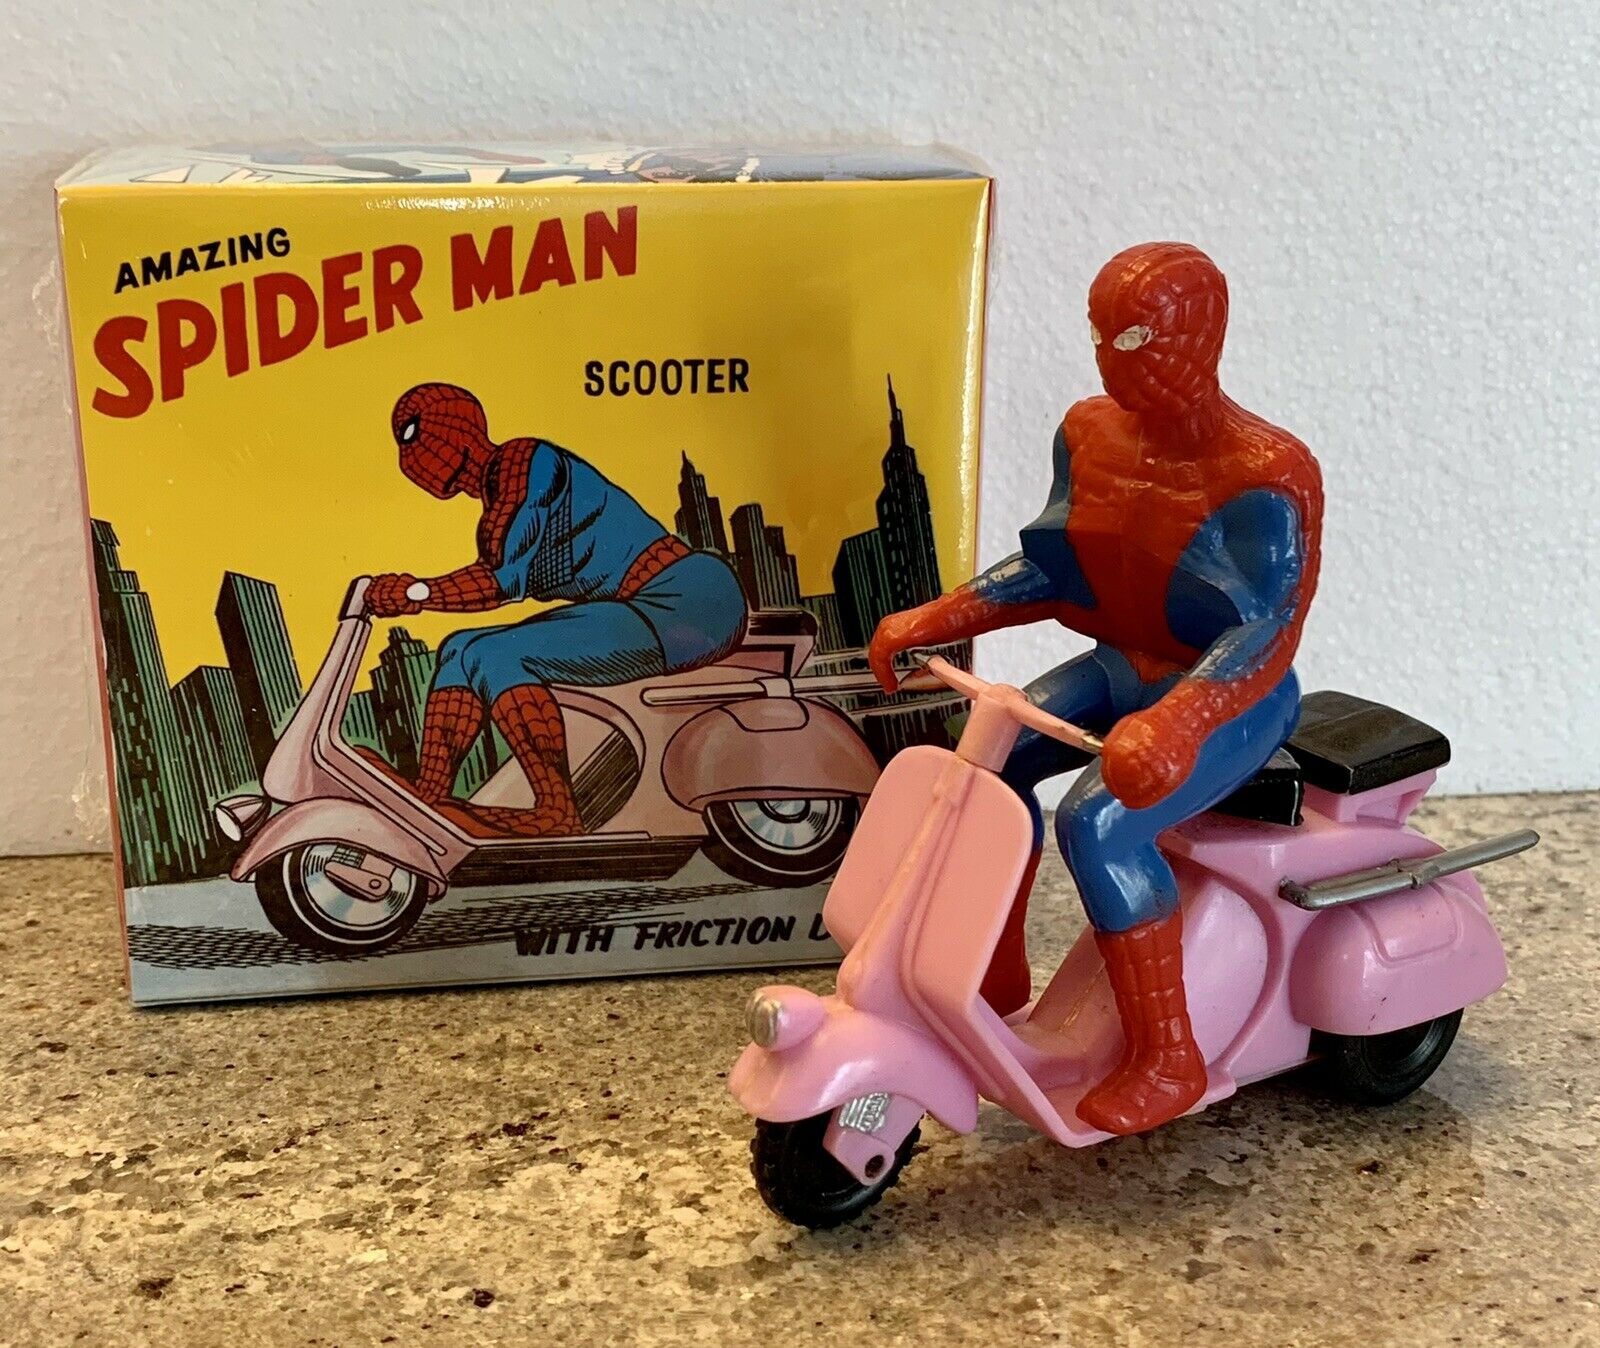 5 Awesome things on eBay this week- Spider-Man Scooter